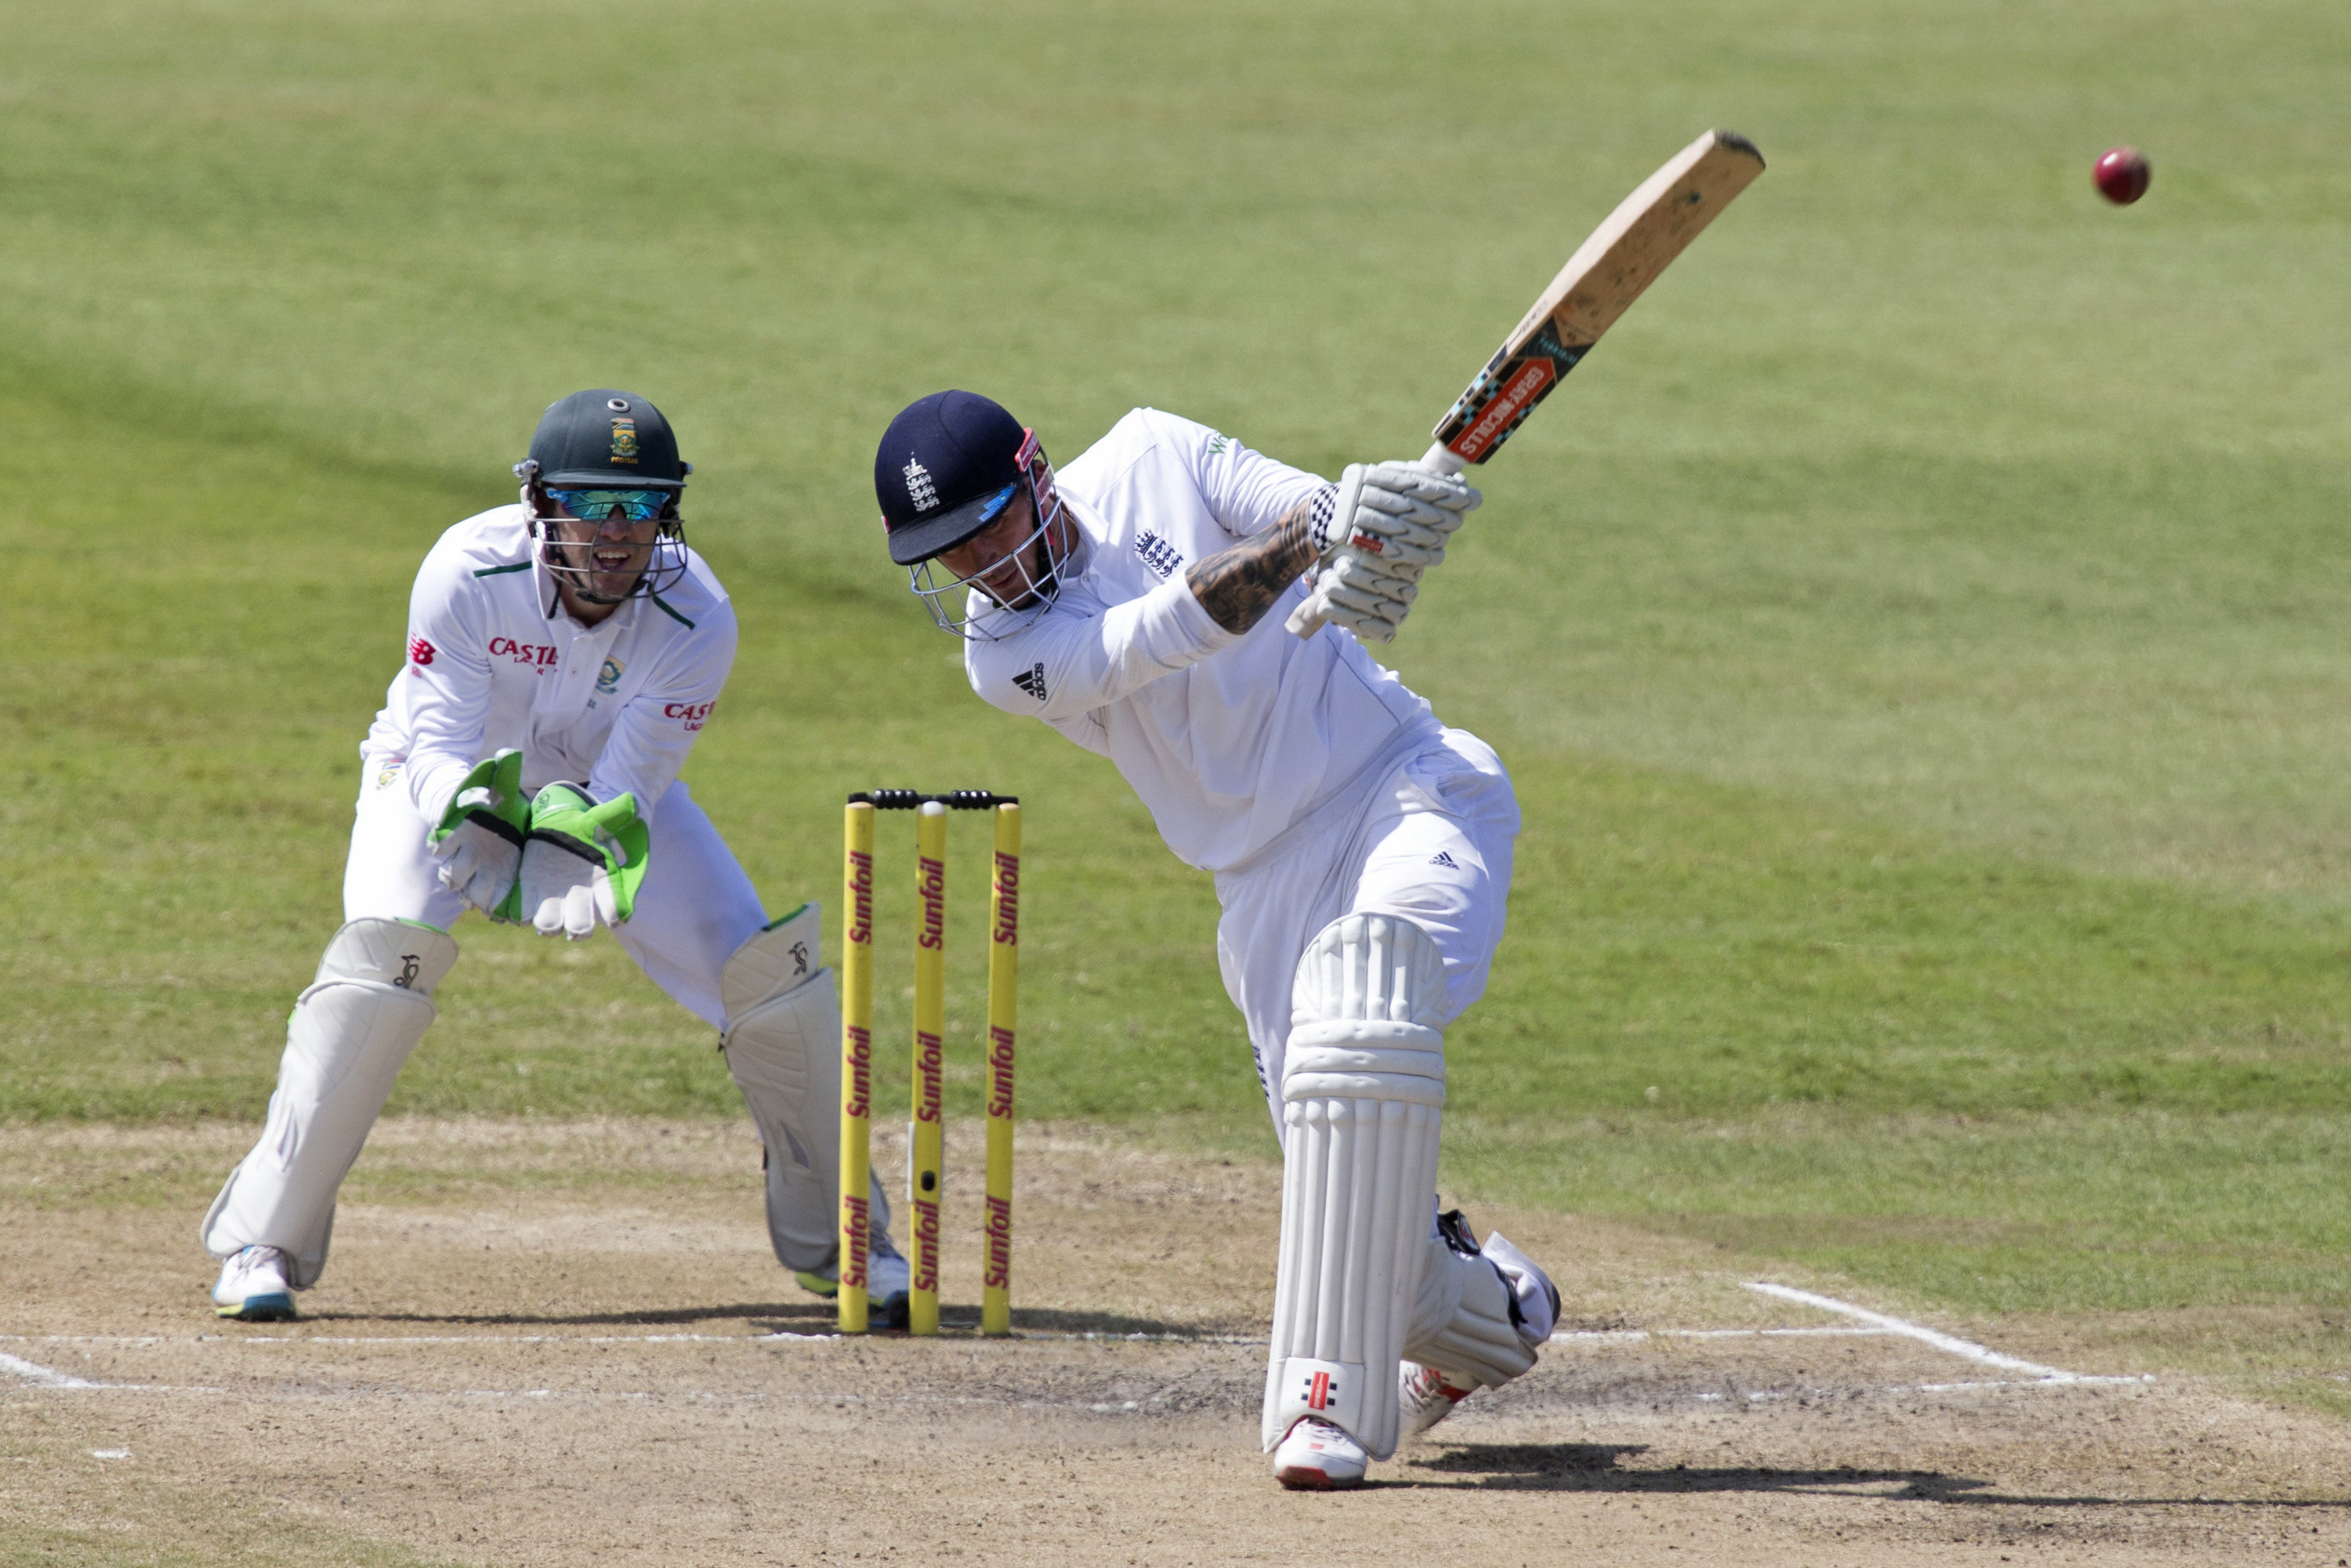 England's Alex Hales (R) plays a shot as South Africa's AB de Villiers looks on during the first cricket test match in Durban, South Africa, December 28, 2015. Photo: Reuters